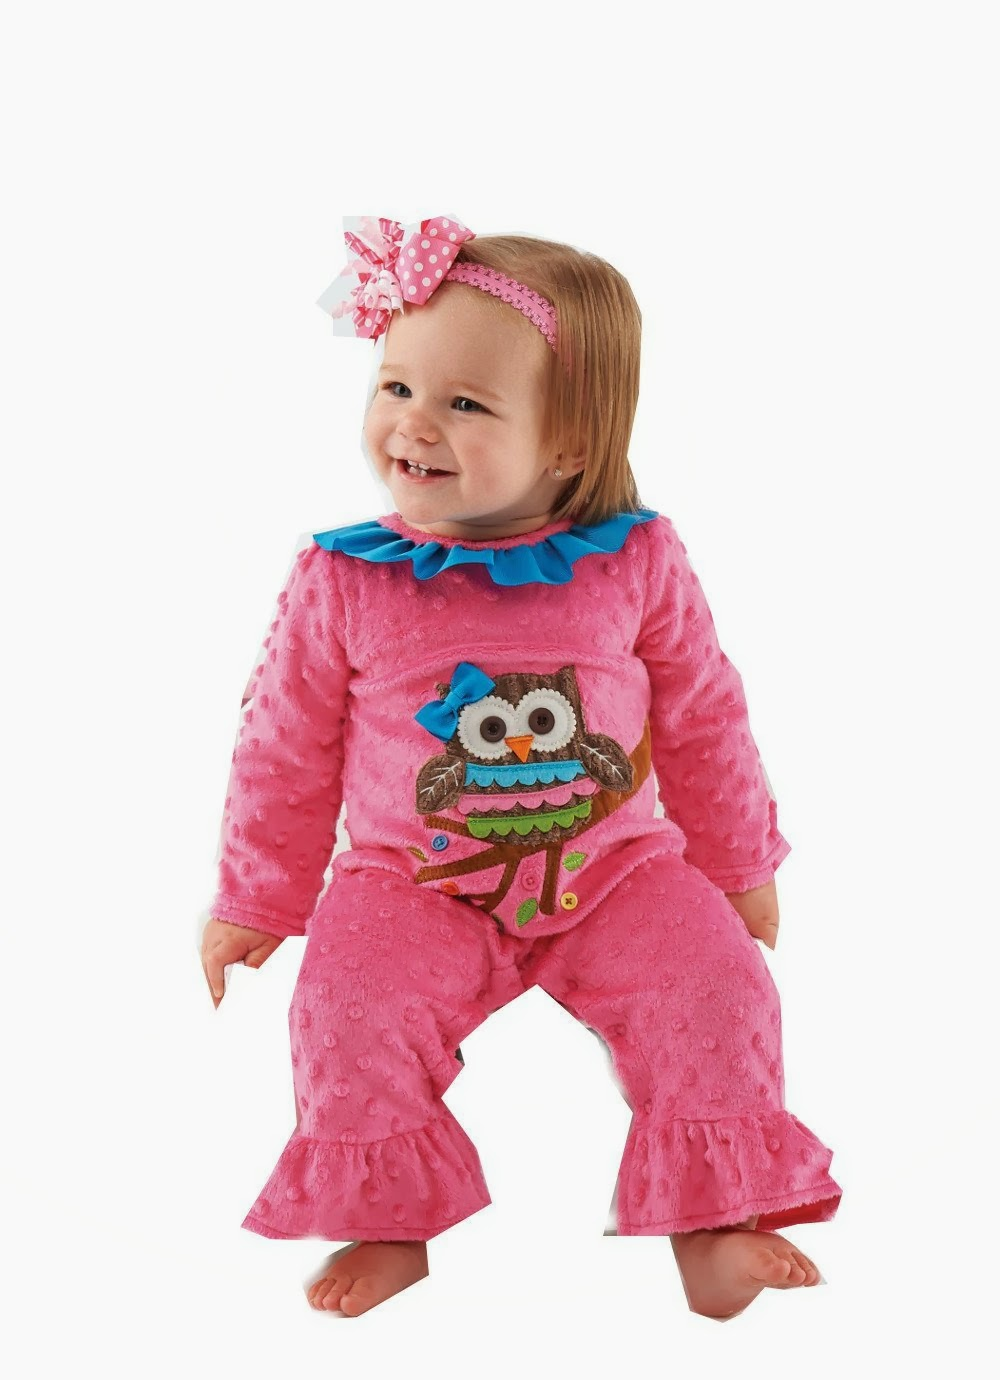 All About Babies Clothes Care And Ideas For Cute Baby